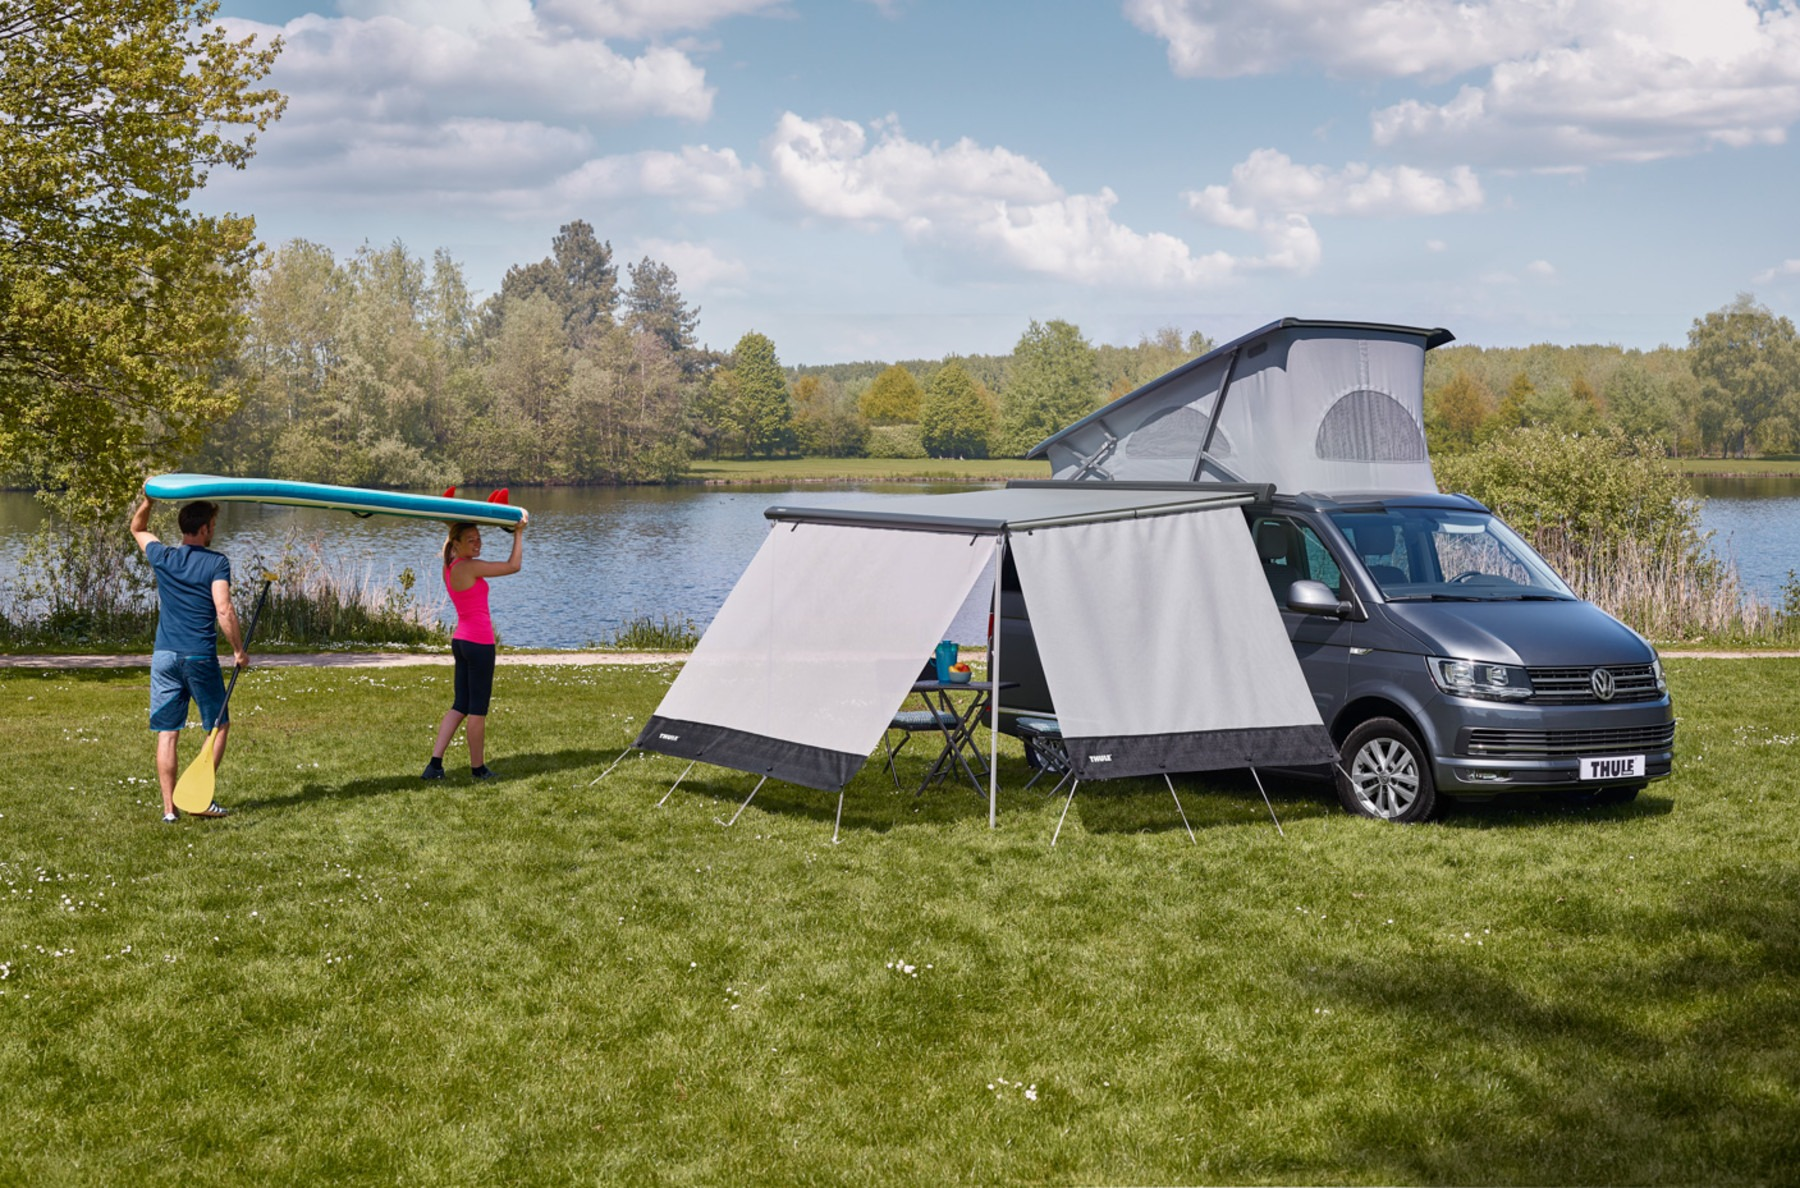 Thule 5102 awning for VW